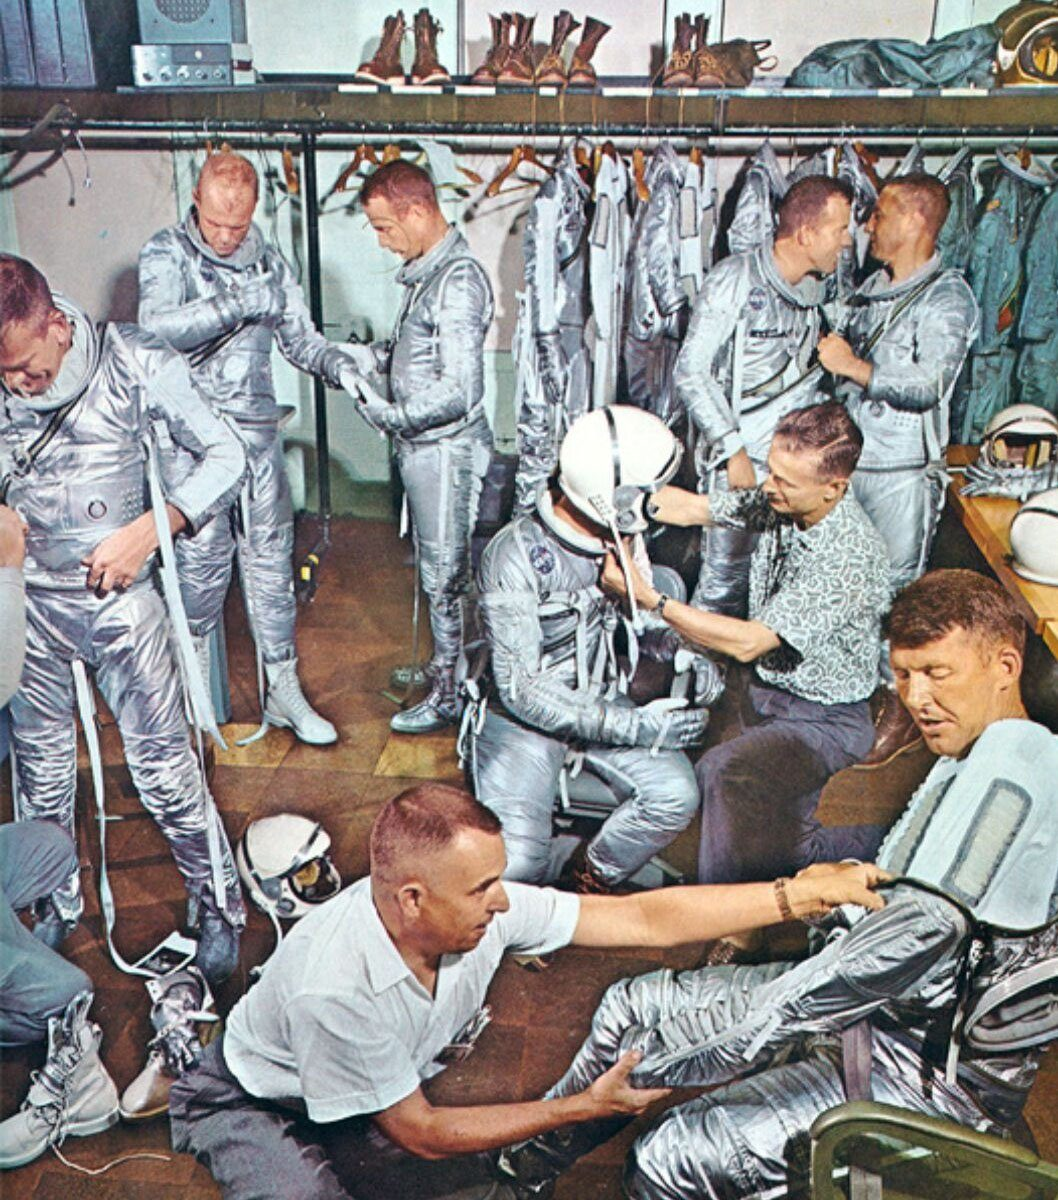 Vintage photo of NASA spacesuits